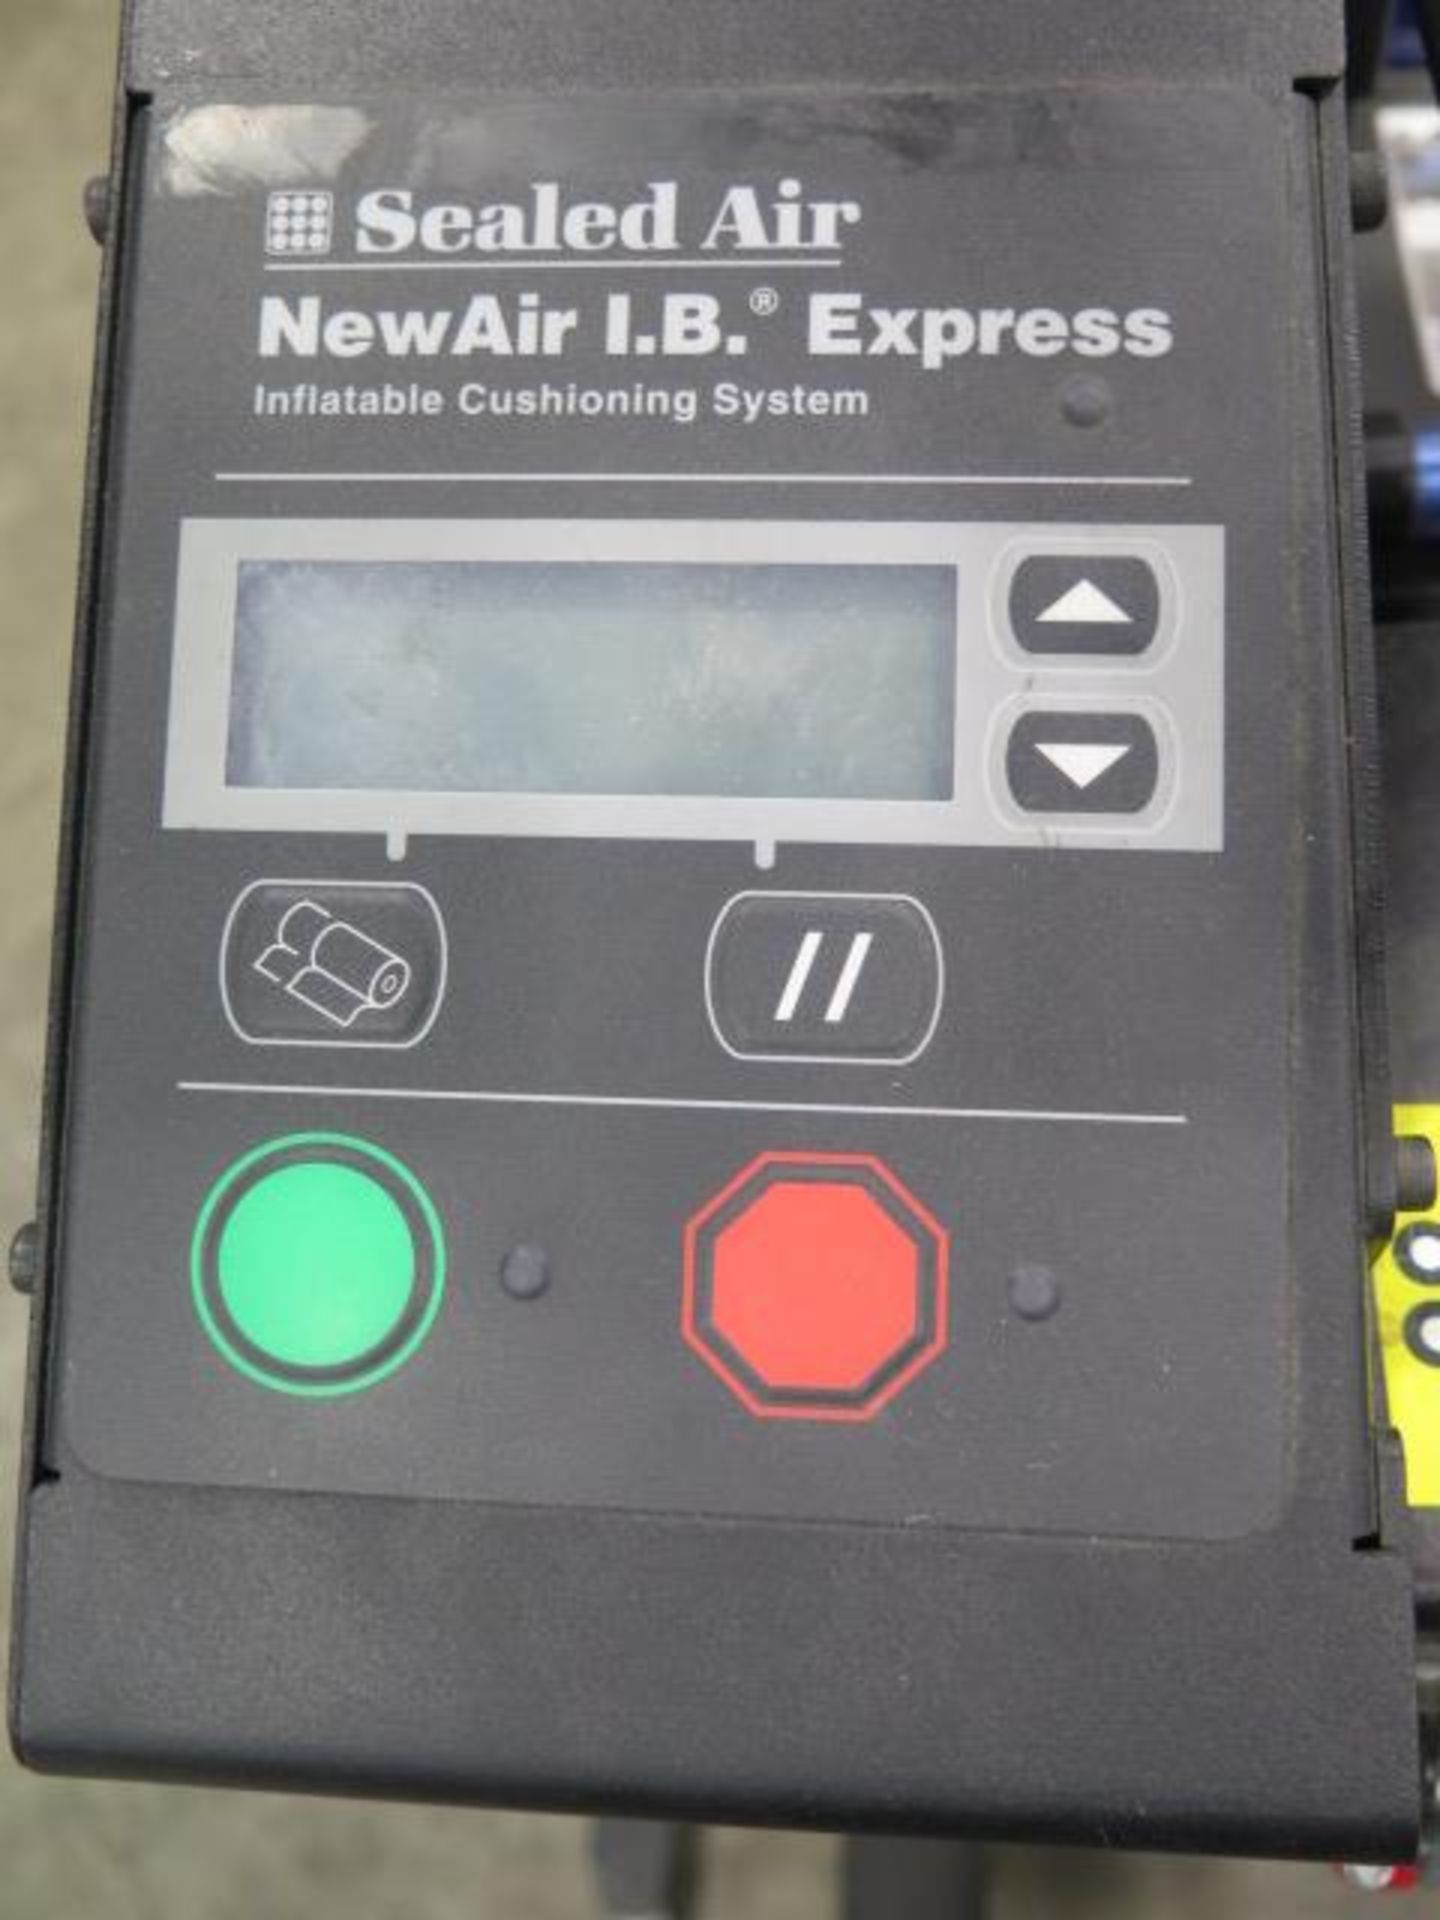 Sealed Air NewAir I.B. Express Inflatable Cushioning System (SOLD AS-IS - NO WARRANTY) - Image 8 of 8